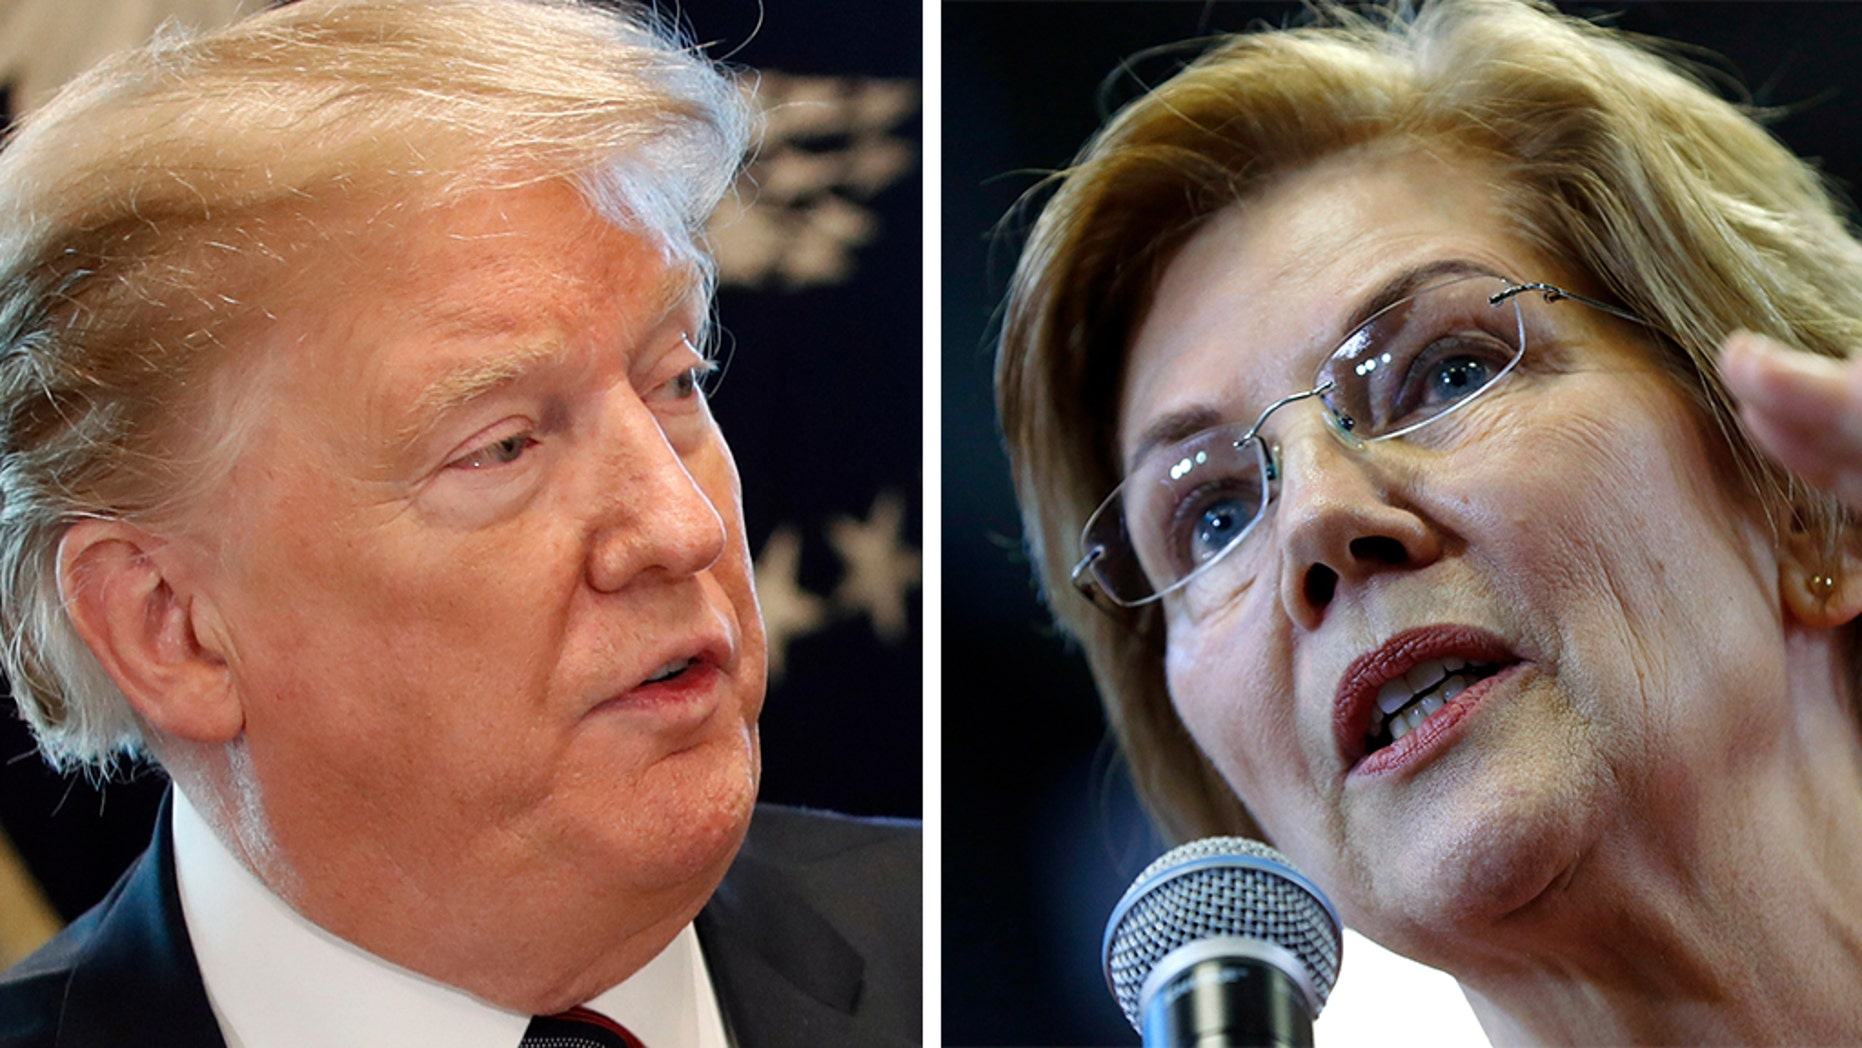 President Trump Slams Elizabeth Warren's Instagram 'Beer Catastrophe'